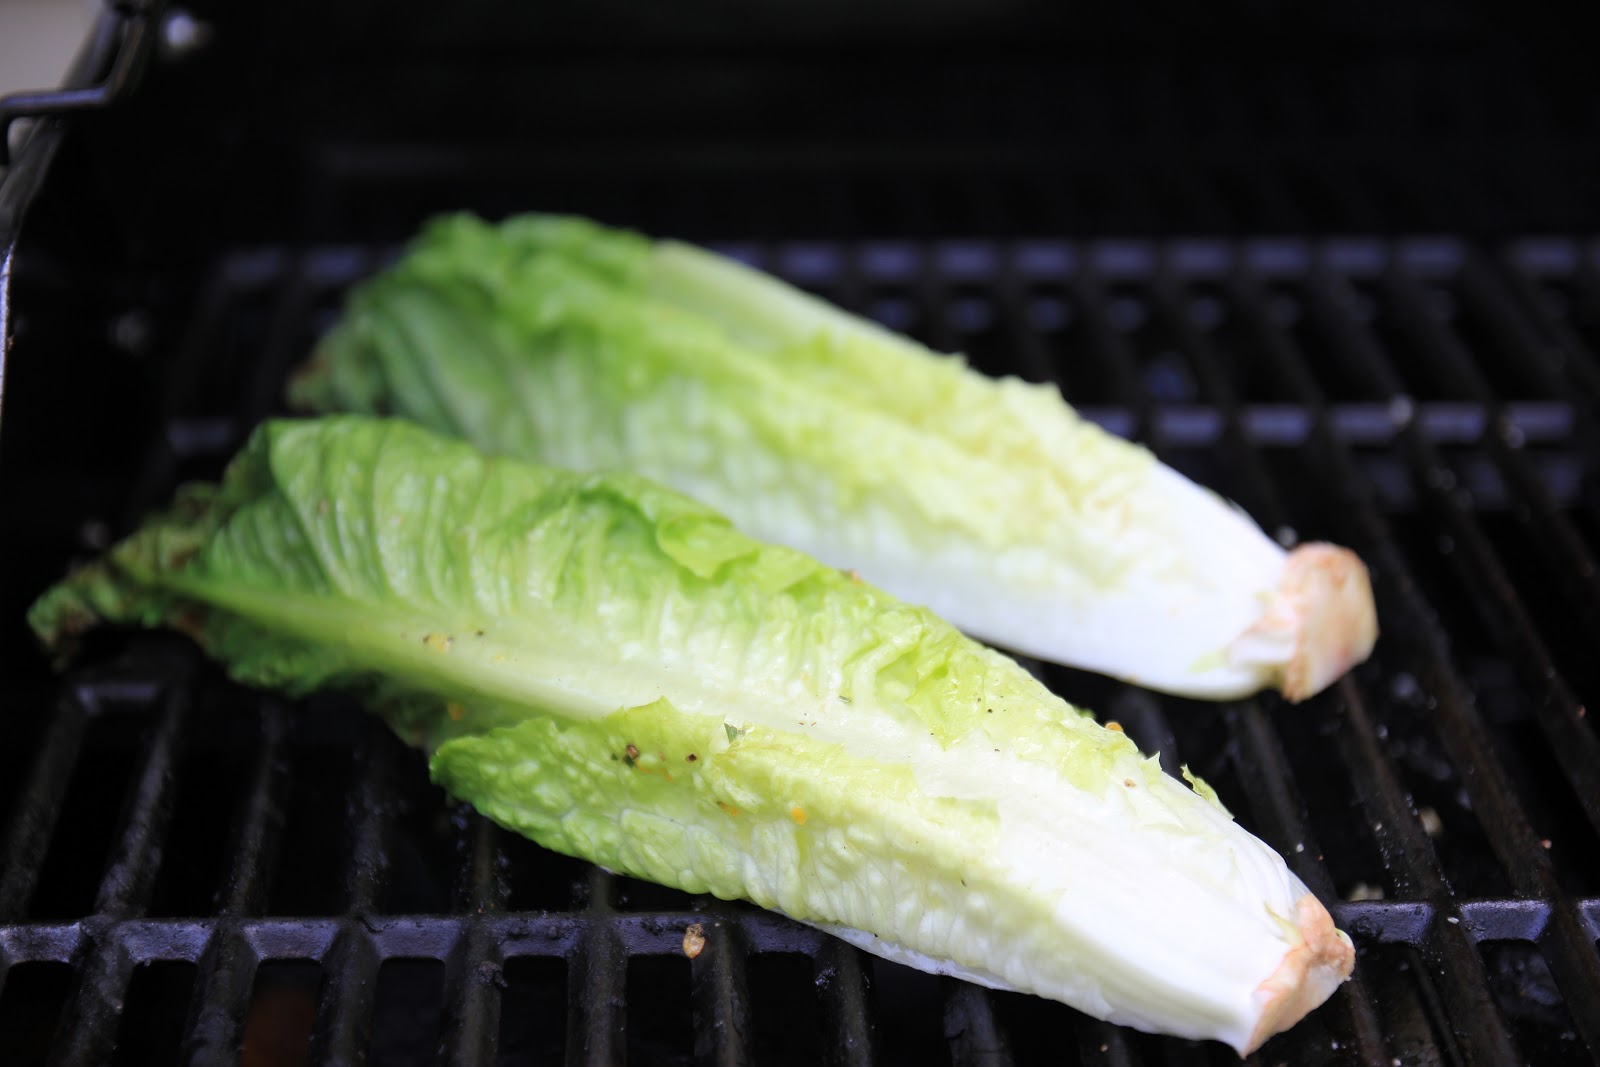 Jenny Steffens Hobick: Grilled Romaine Lettuce | Summer Grilling